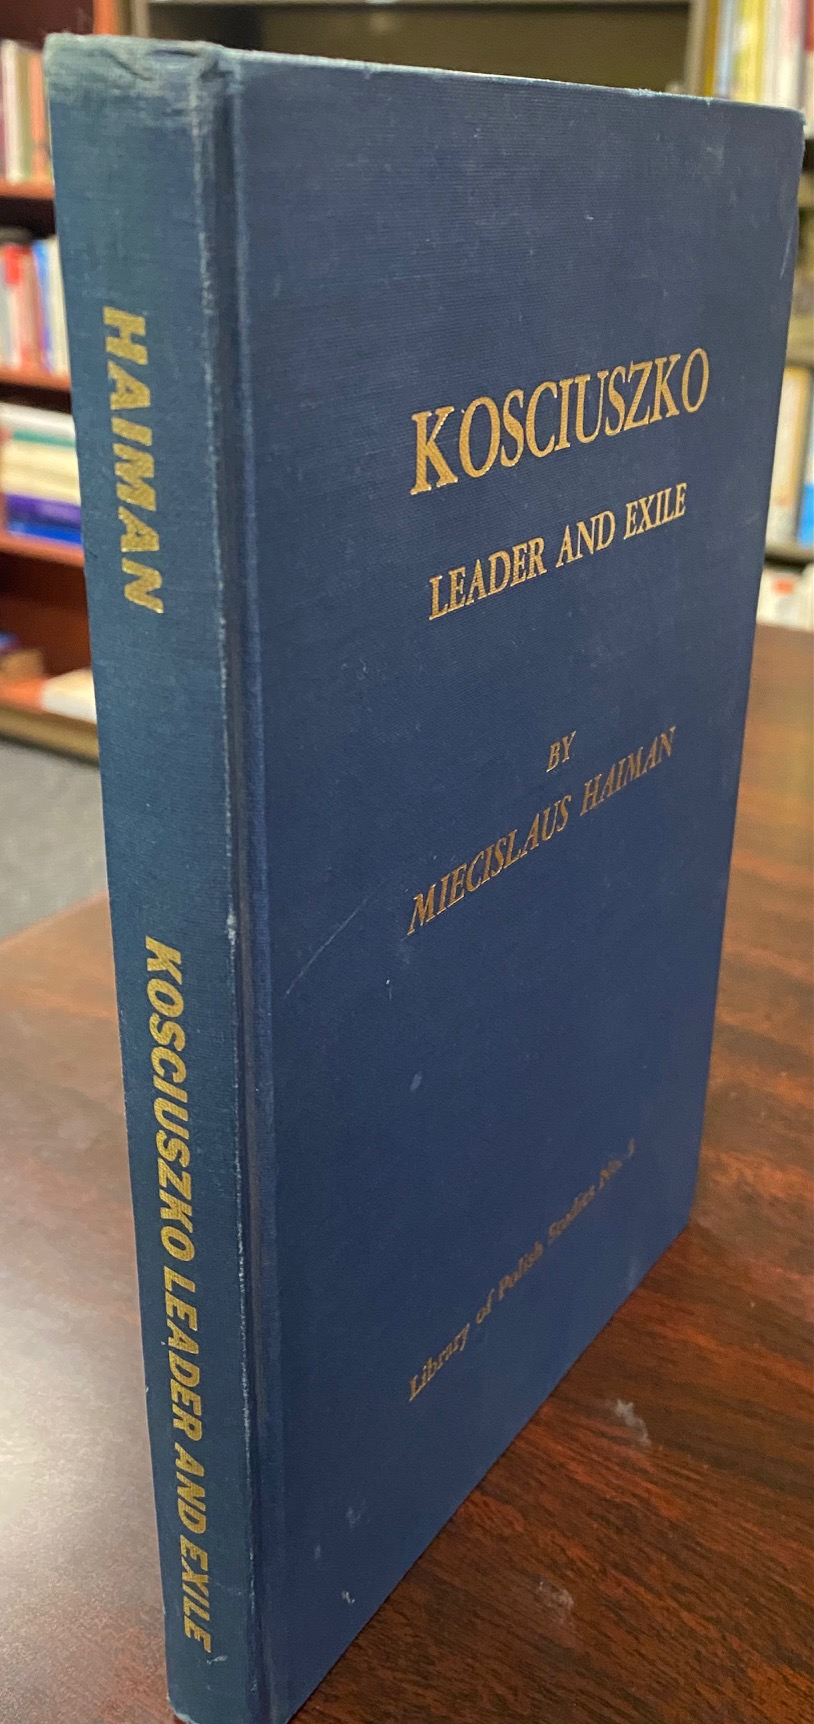 Image for Kosciuszko: Leader and Exile (The Library of Polish Studies - No. 5)